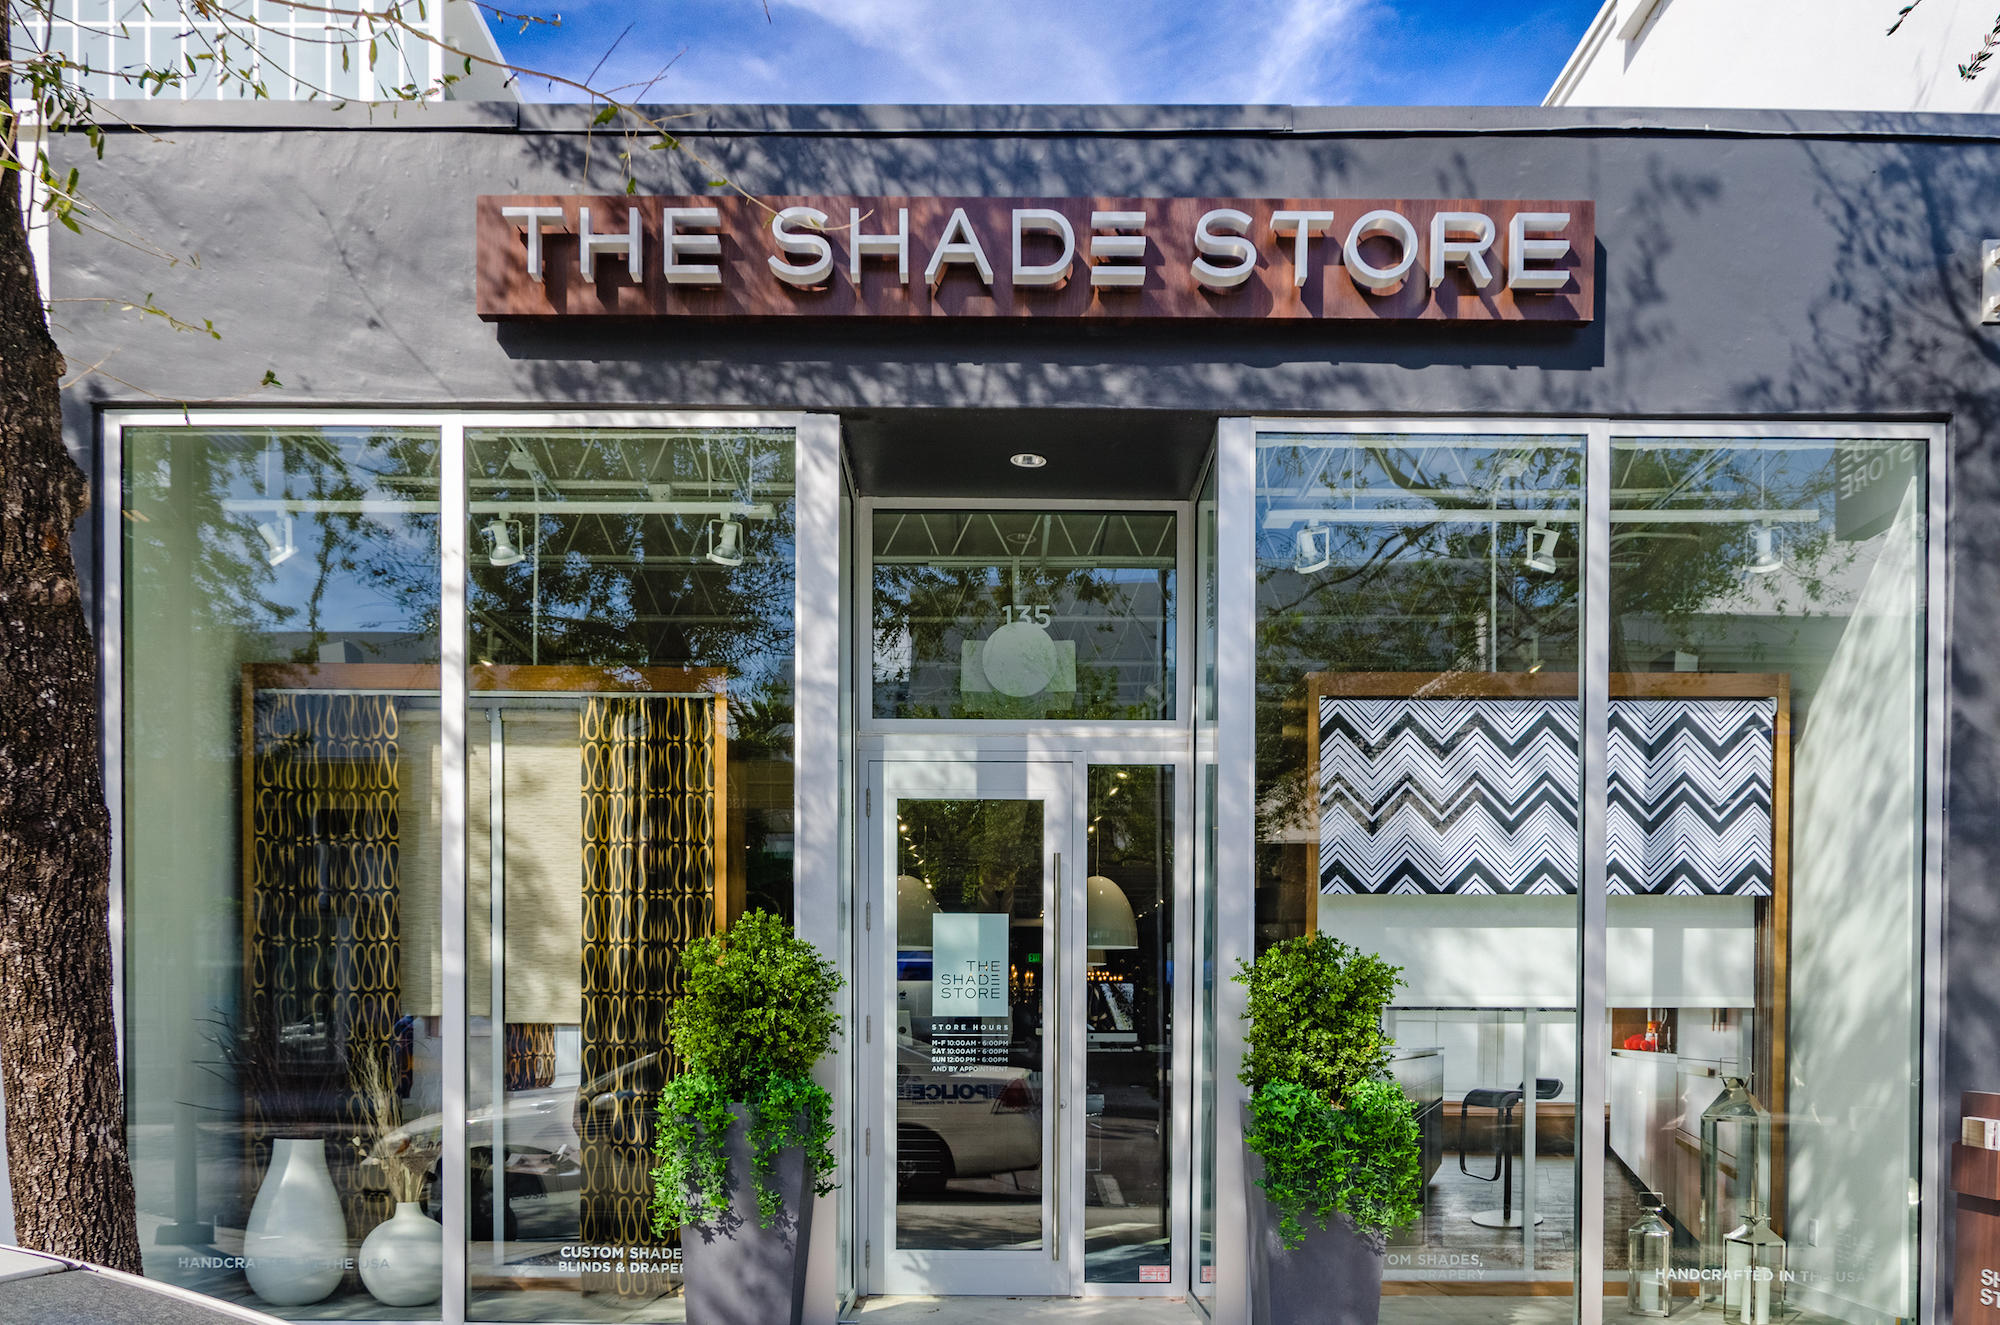 The Shade Store image 11